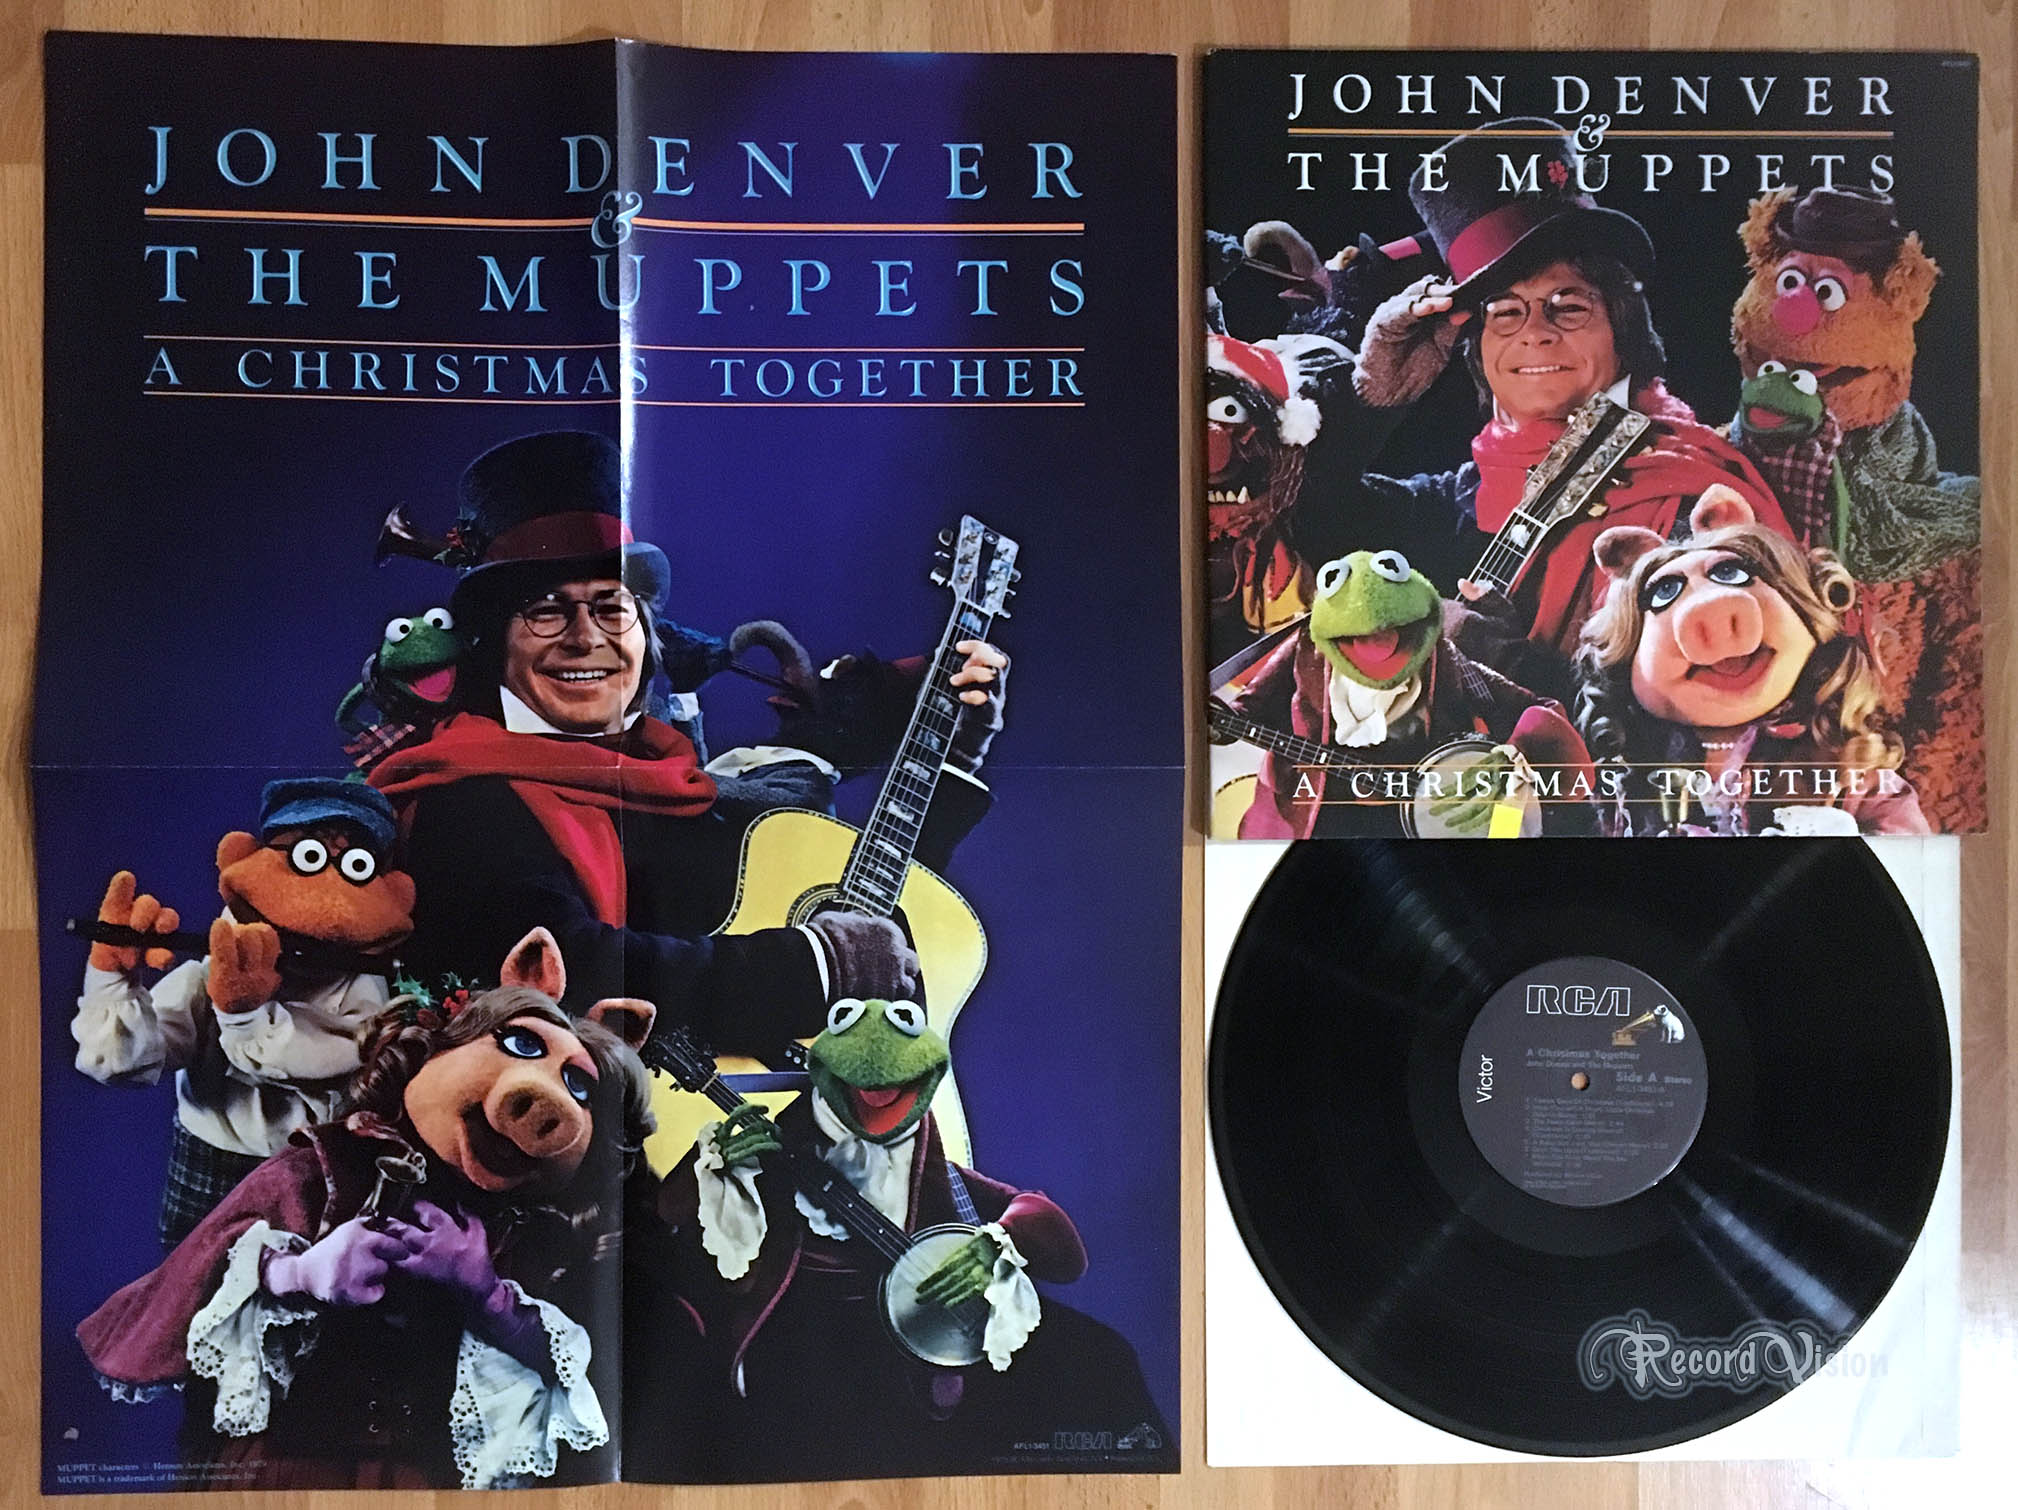 John denver muppets a christmas together dvd / Song of ice and fire ...